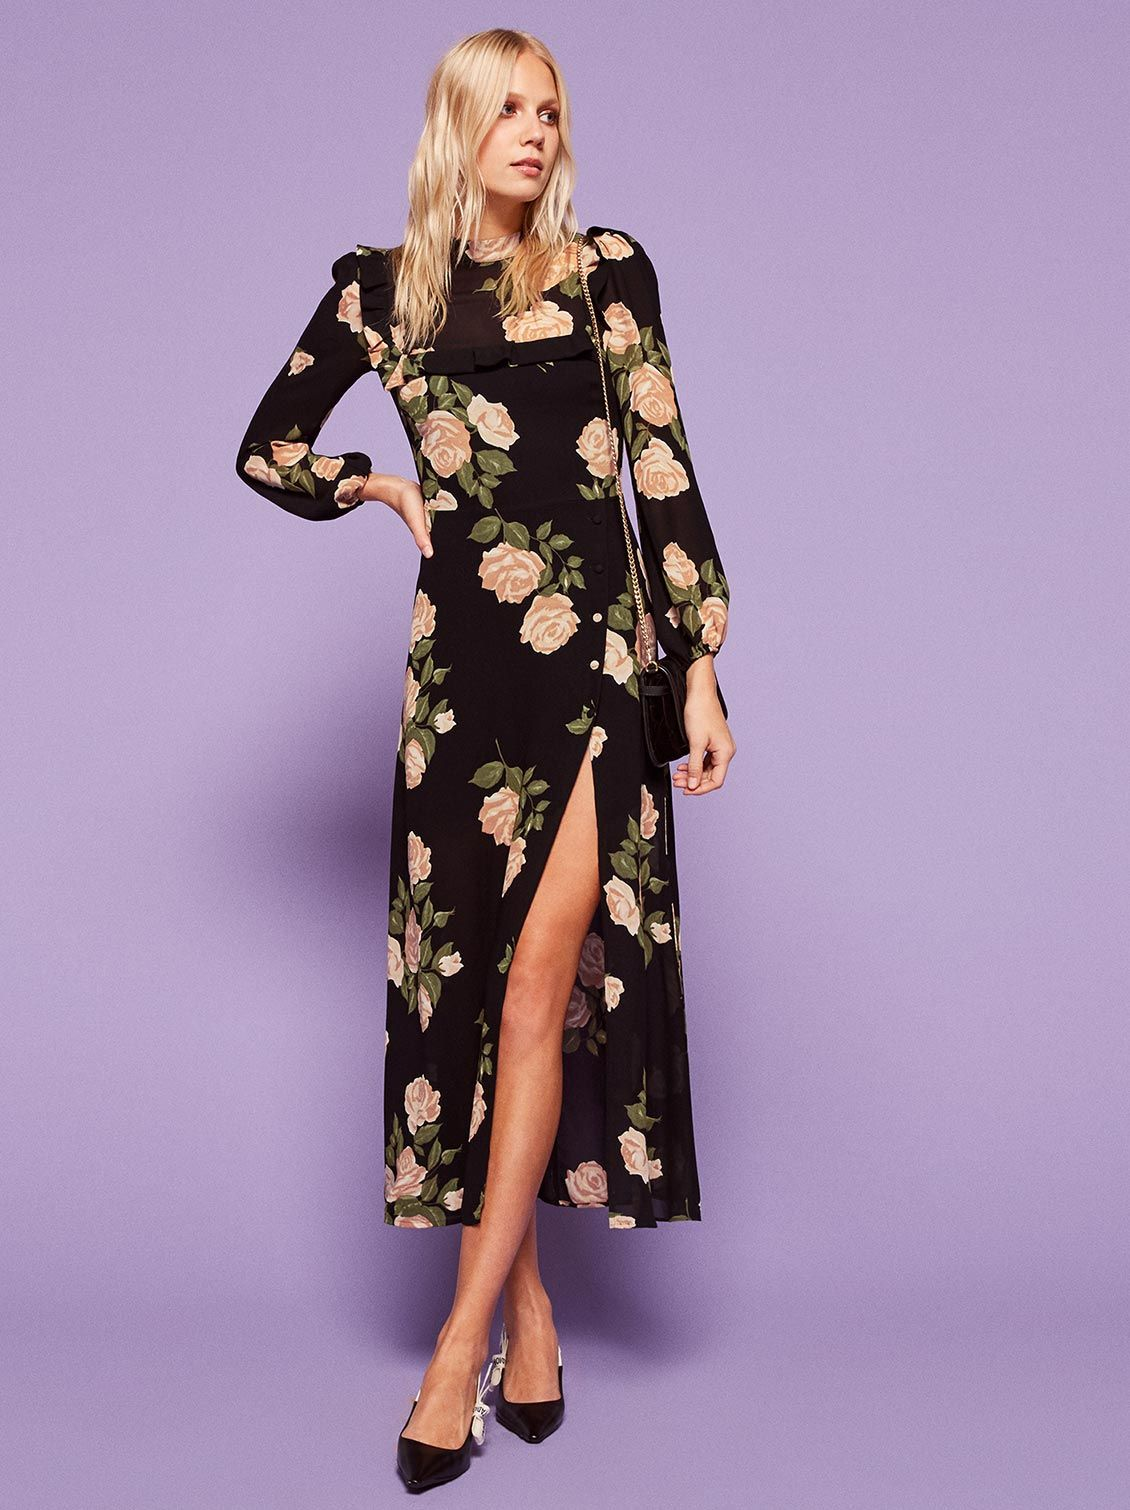 97d46749fbea Black and pink floral print ethically made by Reformation. Perfect for a  spring or summer